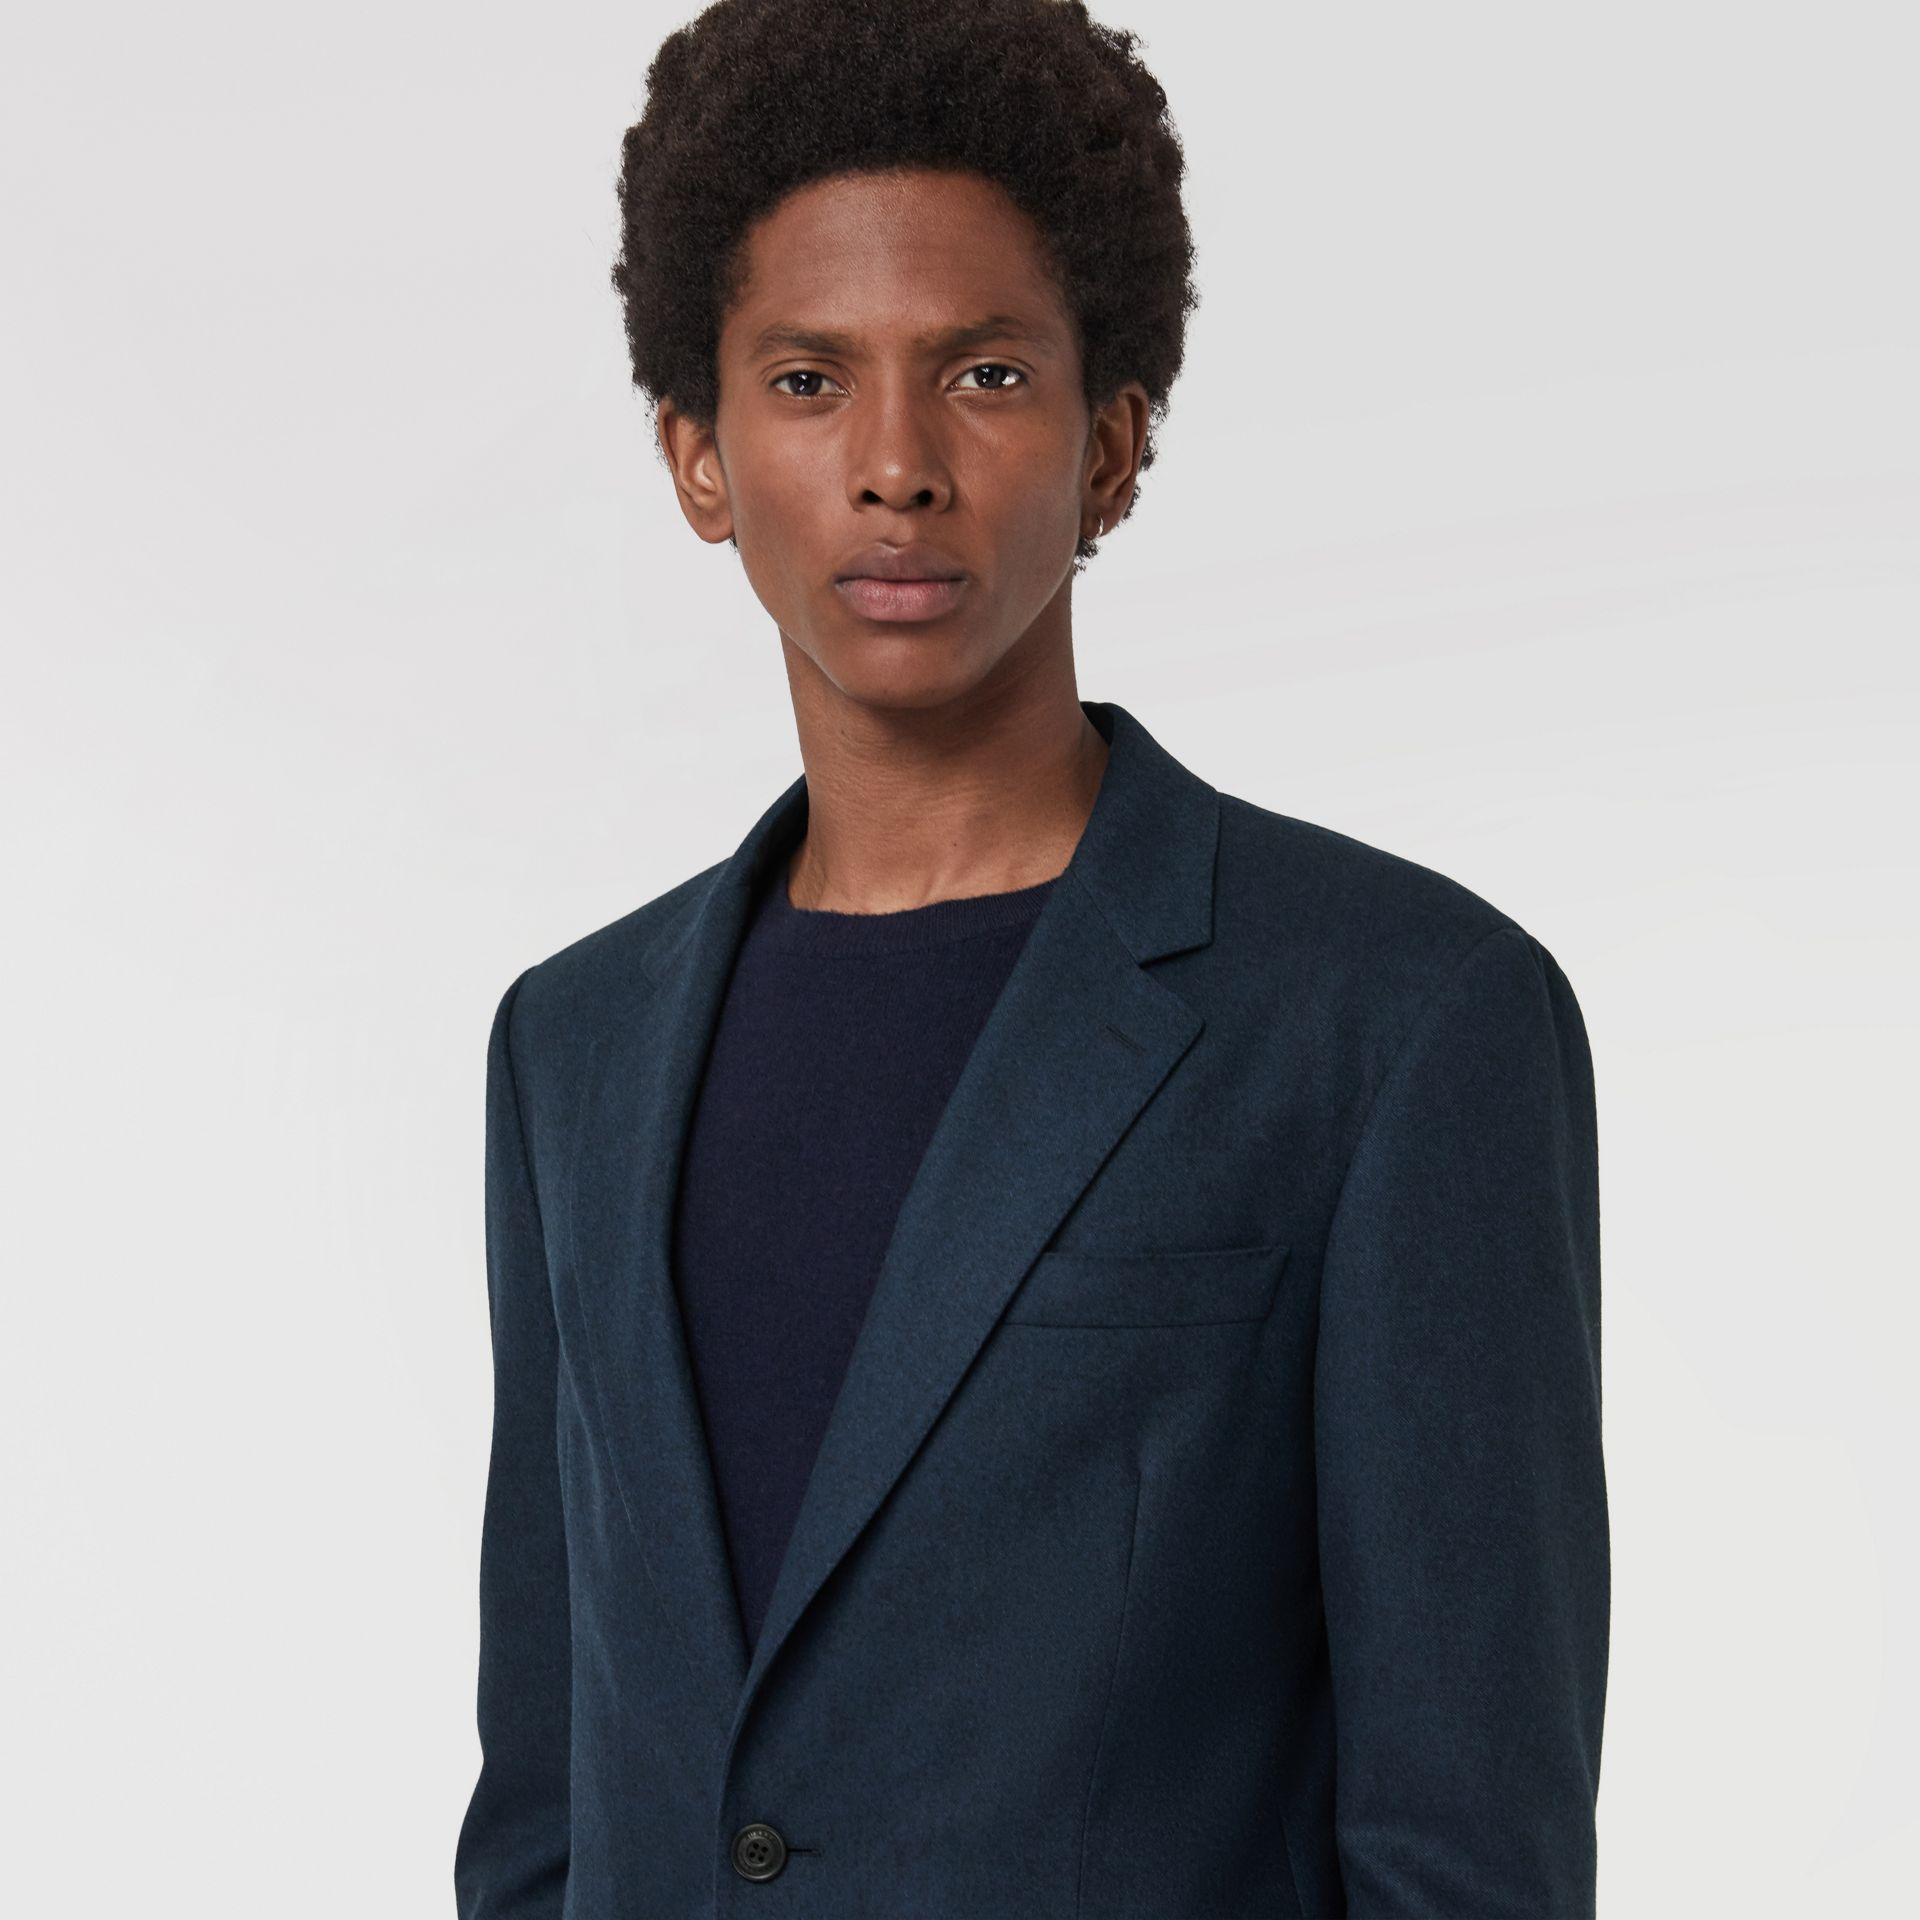 Classic Fit Wool Cashmere Tailored Jacket in Dark Teal - Men | Burberry Australia - gallery image 1